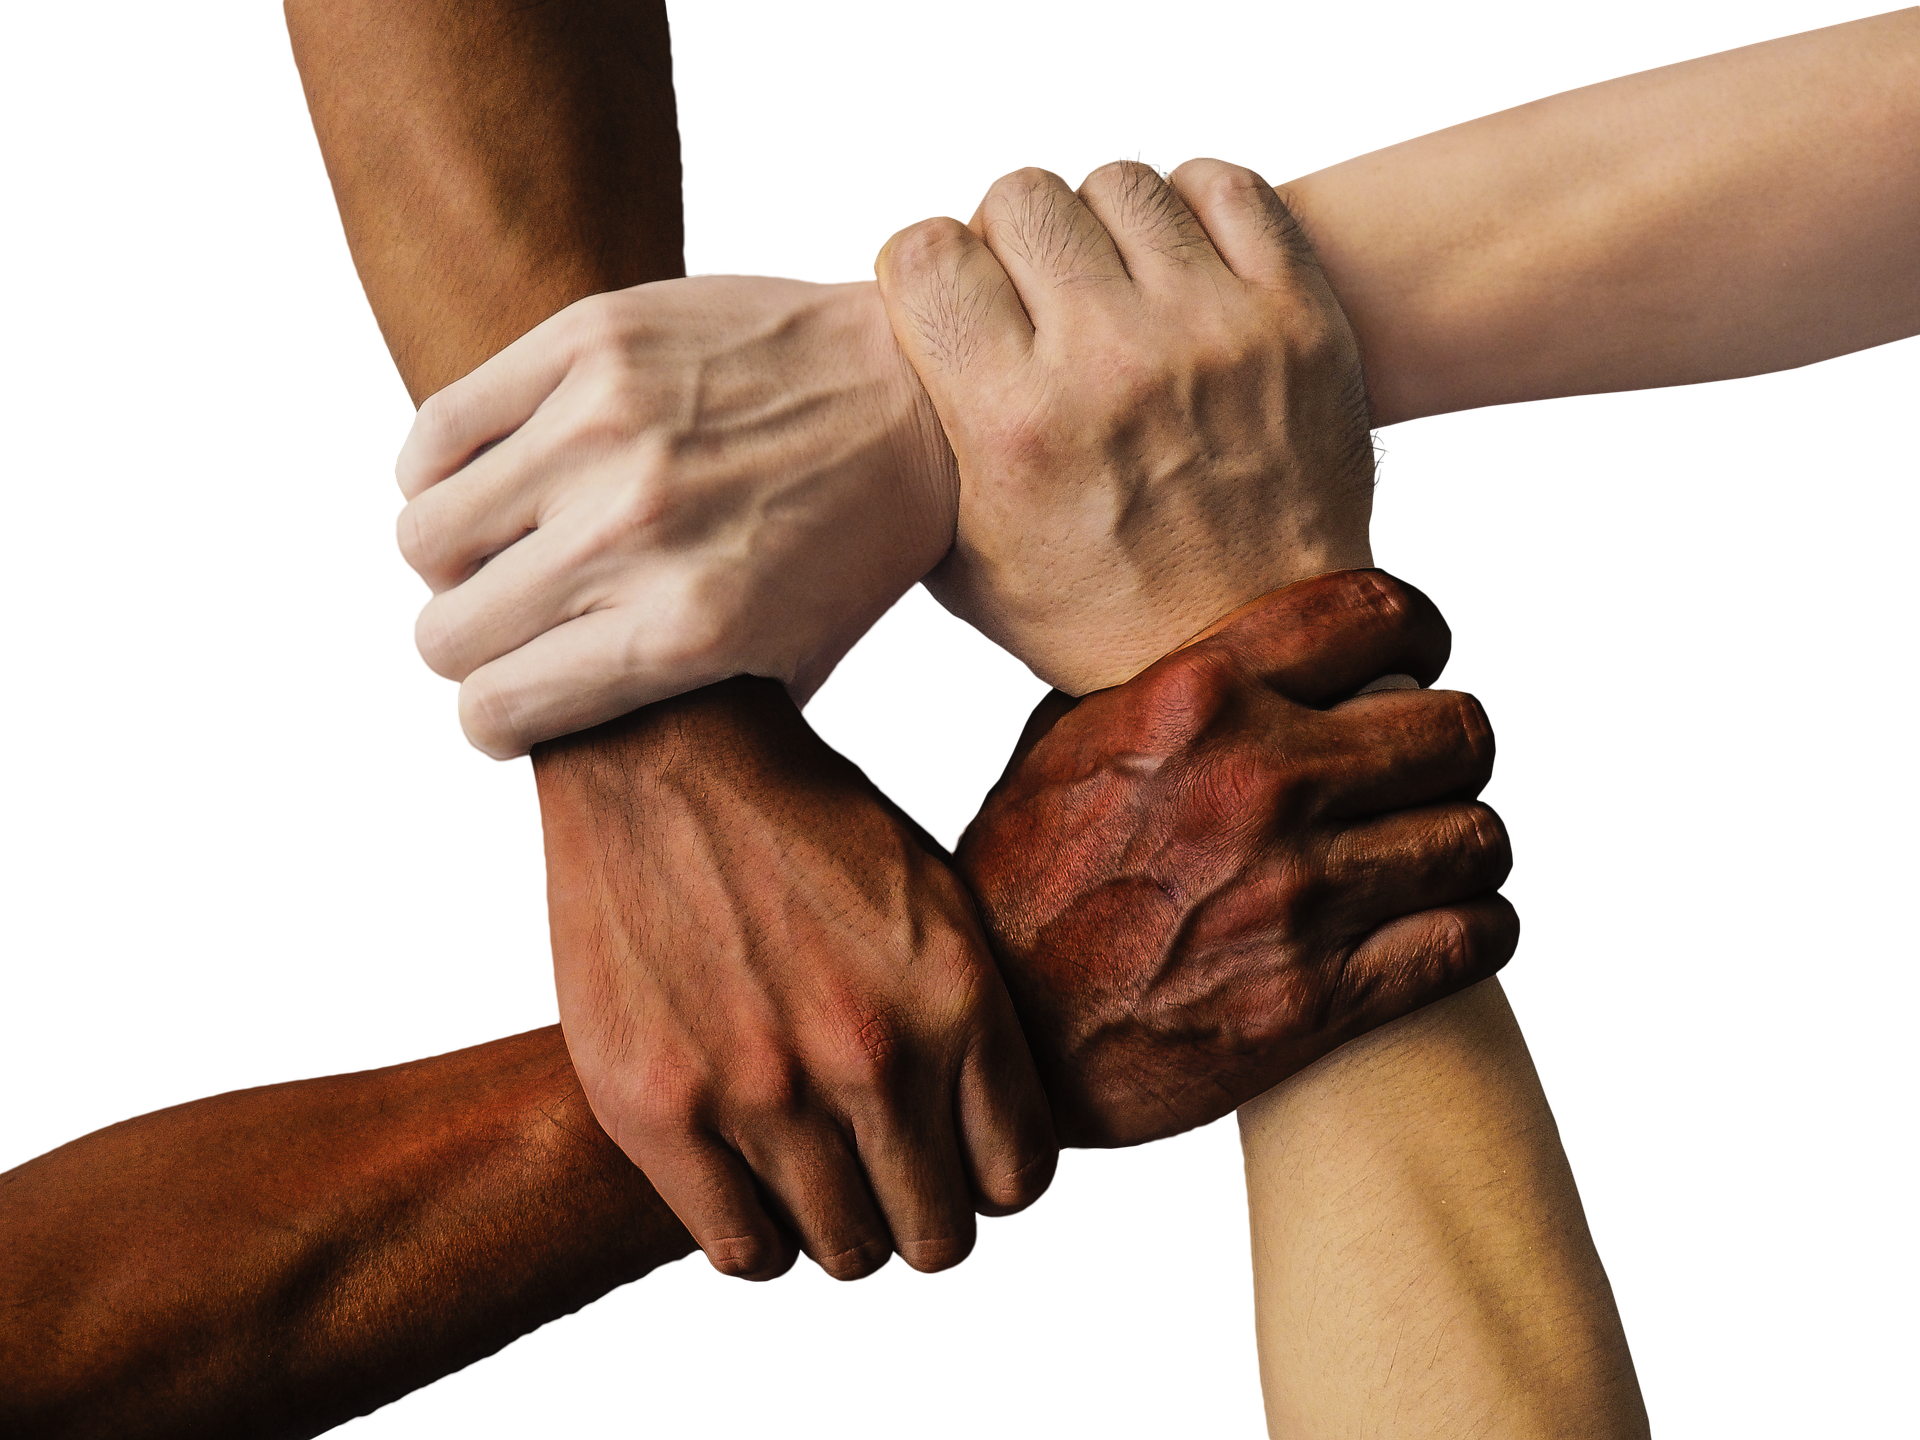 a photograph showing multiracial hands joined together in a circle